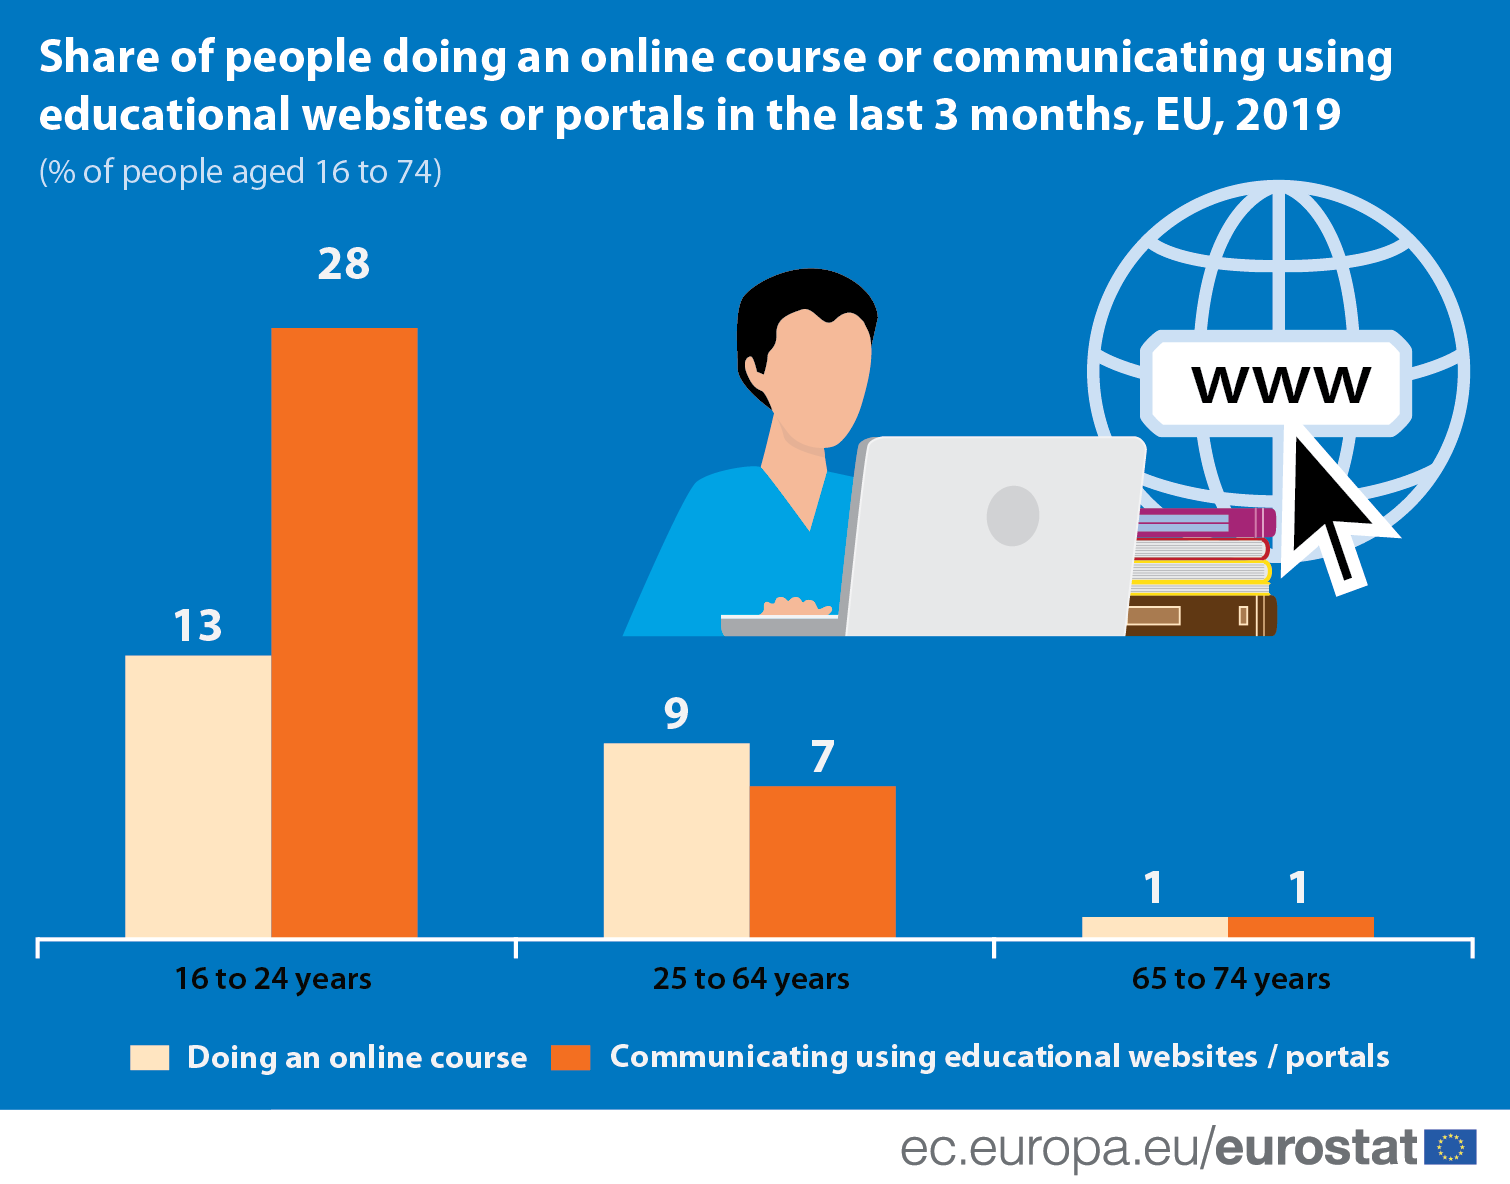 Infographic: Share of people doing an online course or communicating using educational websites or portals in the last 3 months, EU, 2019